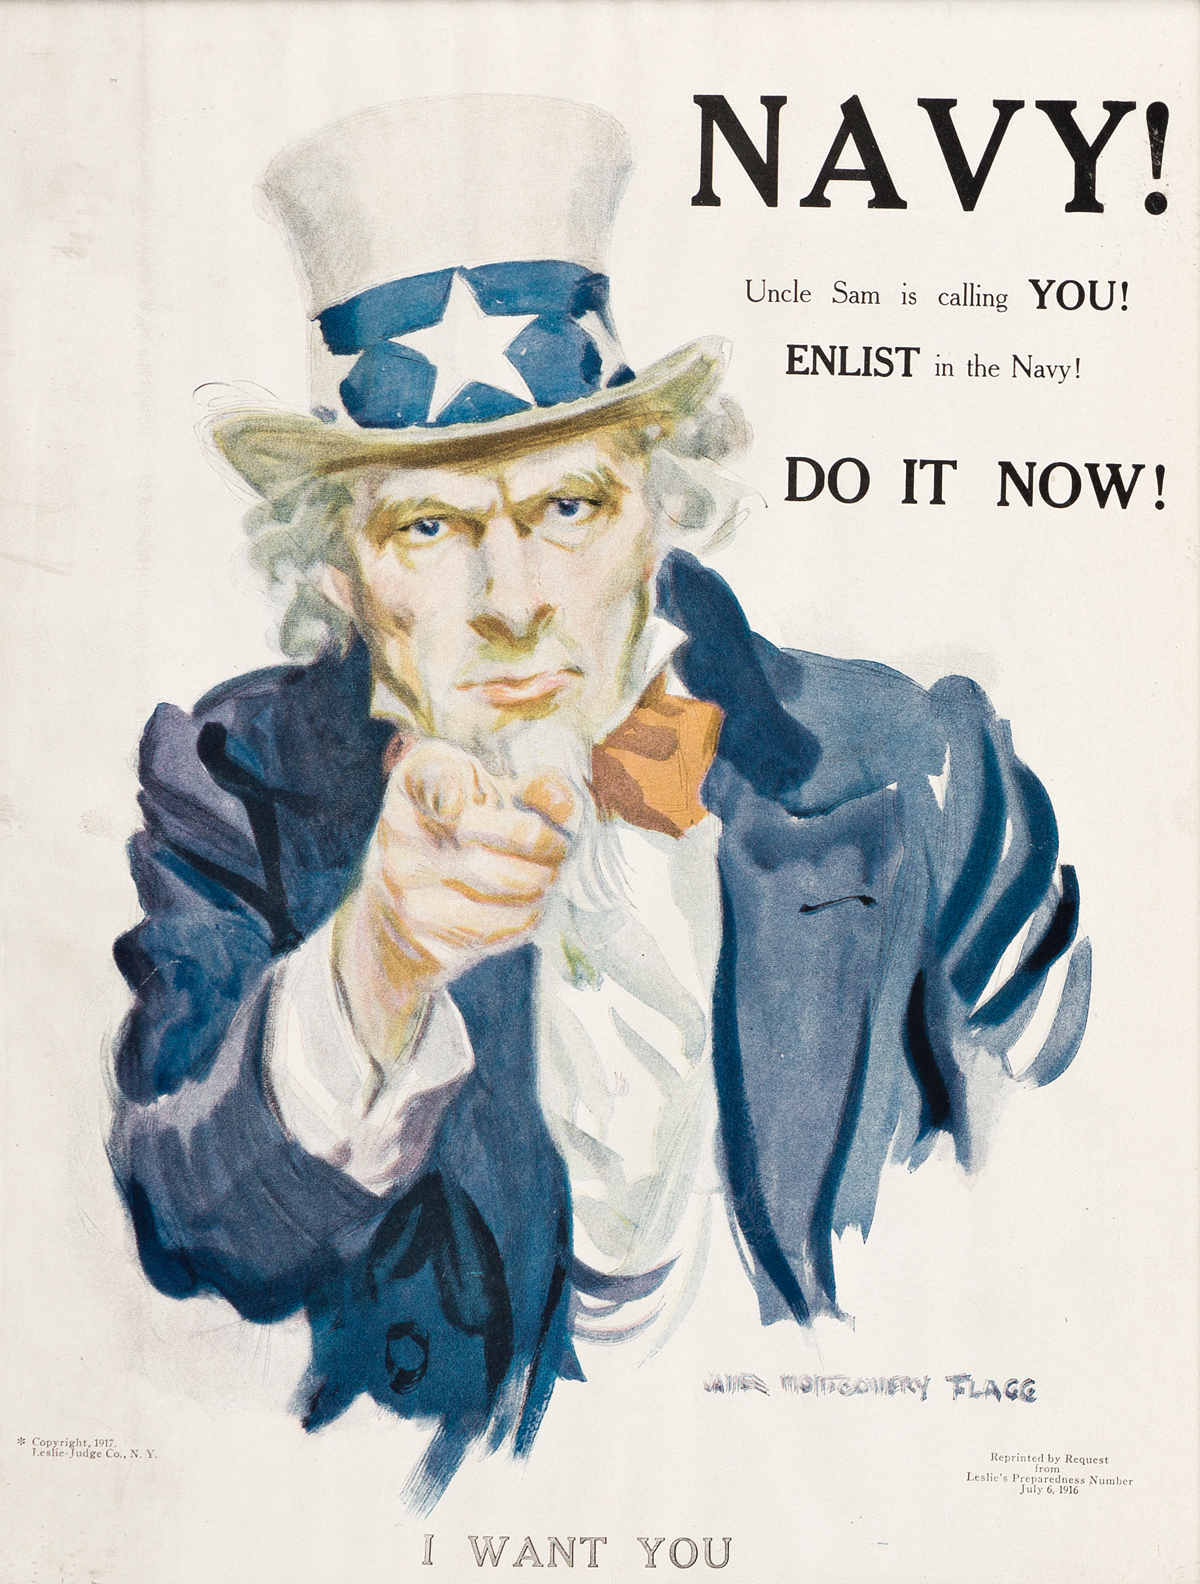 JAMES MONTGOMERY FLAGG (1870-1960).  NAVY! UNCLE SAM IS CALLING YOU! 1917. 13½x10 inches, 34¼x25½ cm. Leslie-Judge Co., New York.